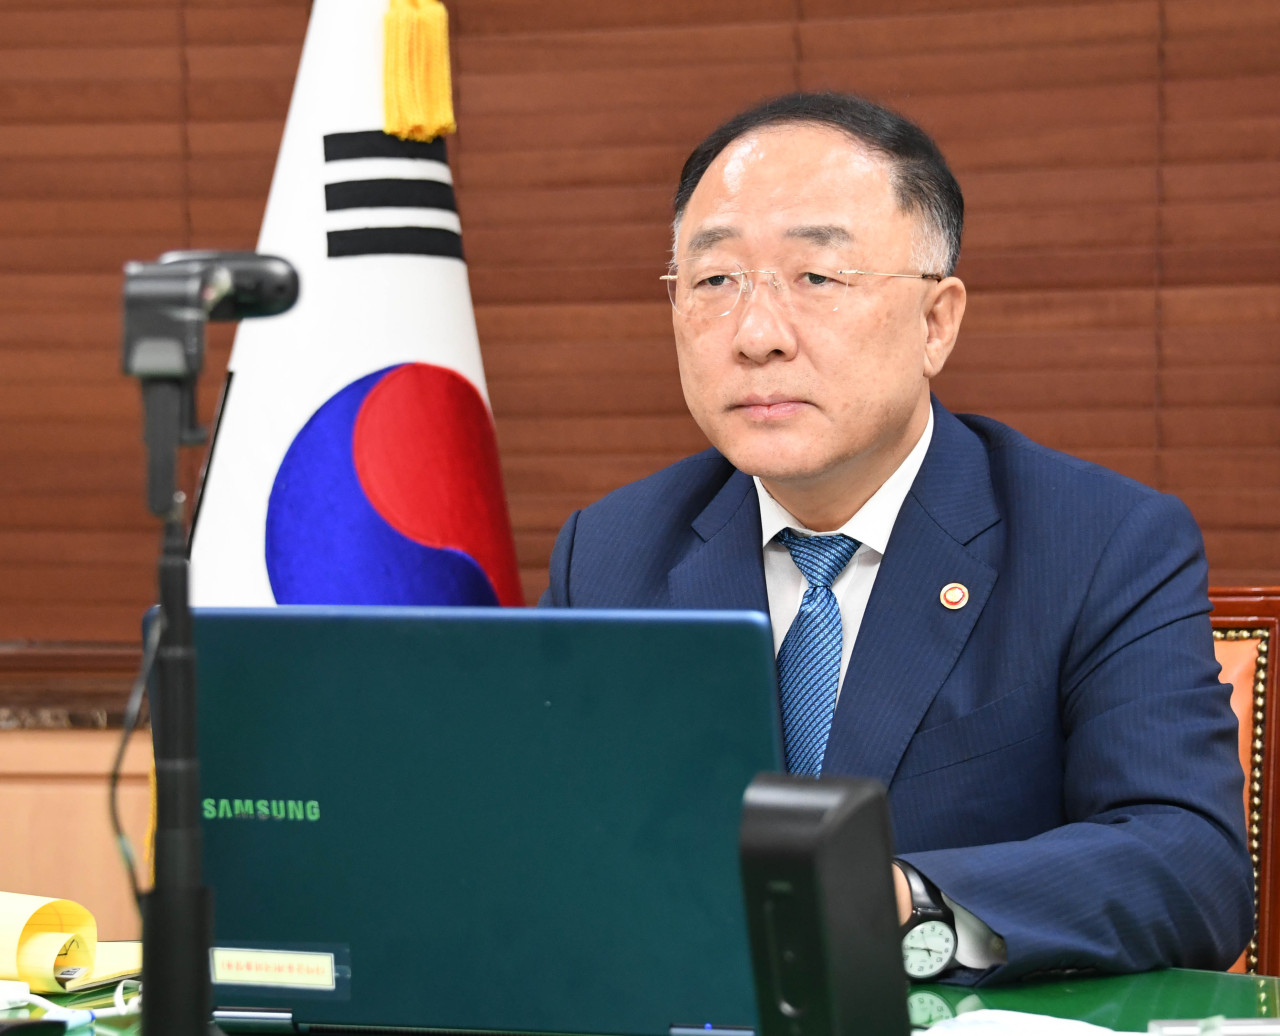 Deputy Prime Minister and Finance Minister Hong Nam-ki speaks at an online meeting with finance ministers from Group of 20 countries and Paris Club creditor nations at the Seoul Government Complex on Thursday. (Ministry of Economy and Finance)